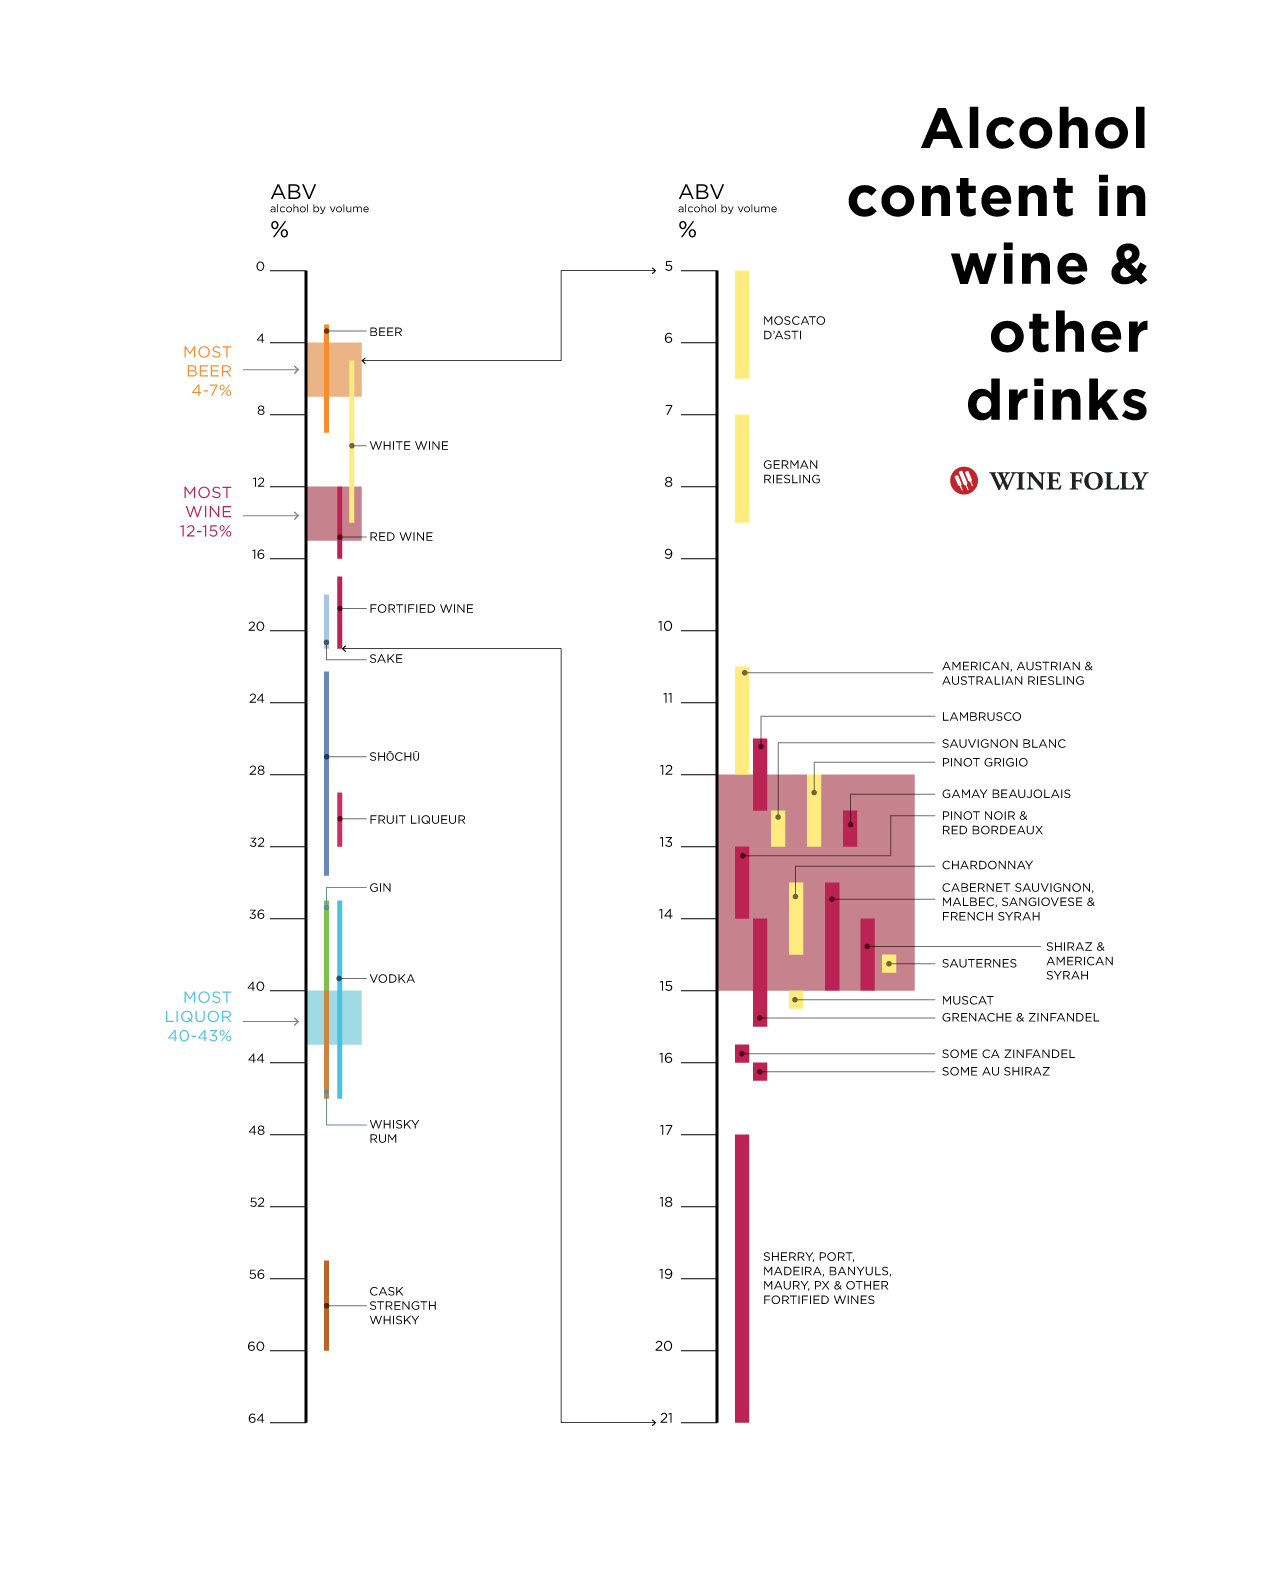 alcohol content in wine and other drinks infographic by Wine Folly